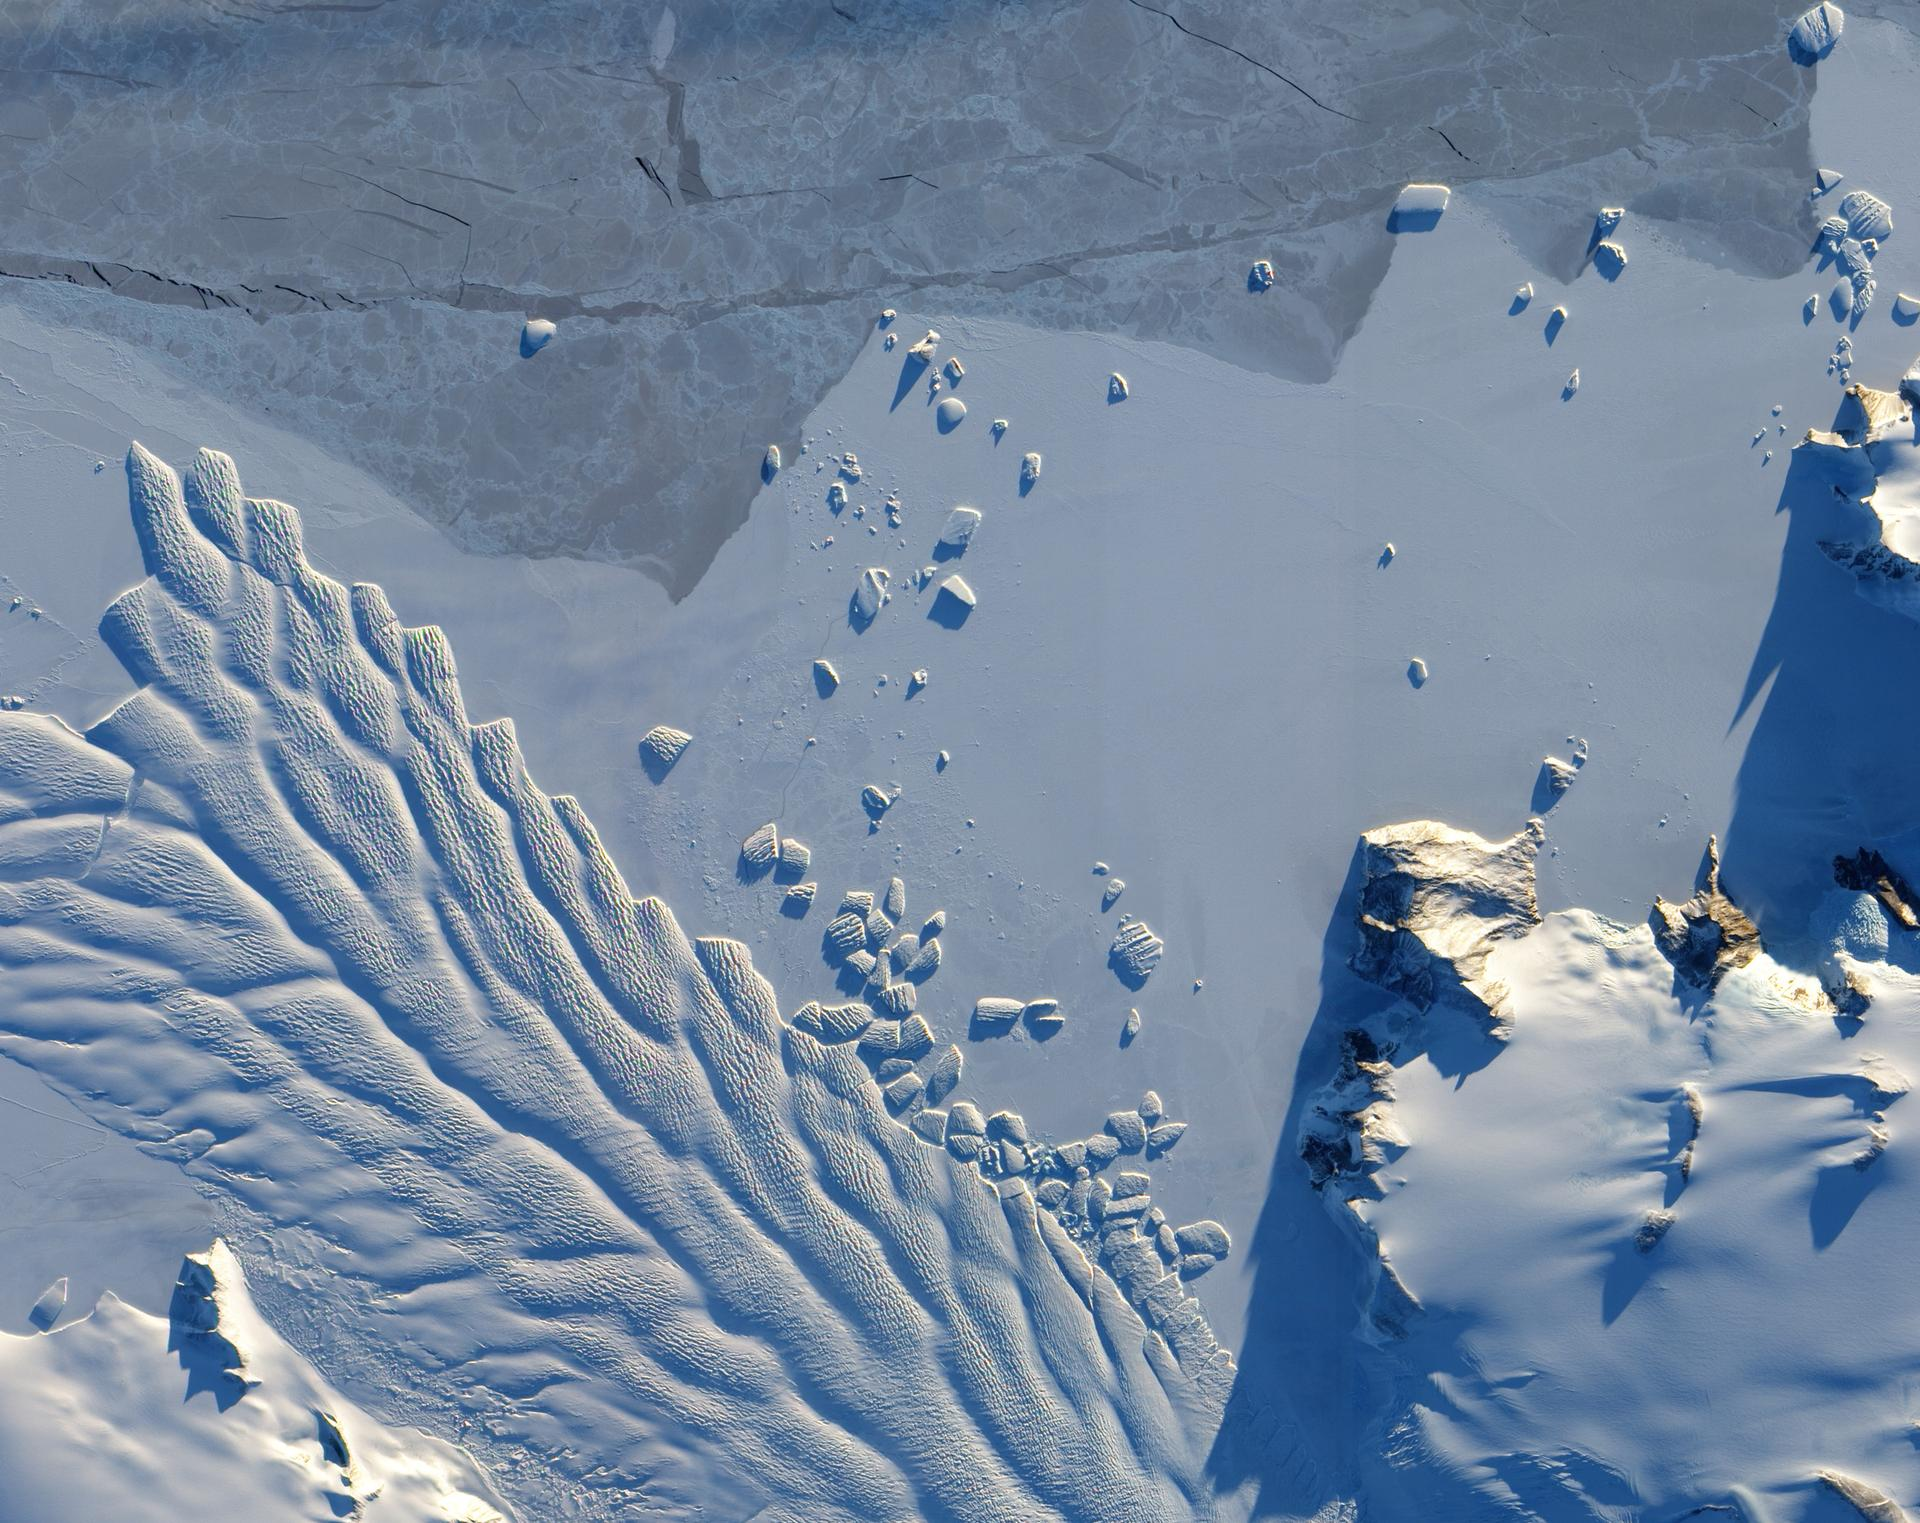 Earth's frozen landscape, seen from space